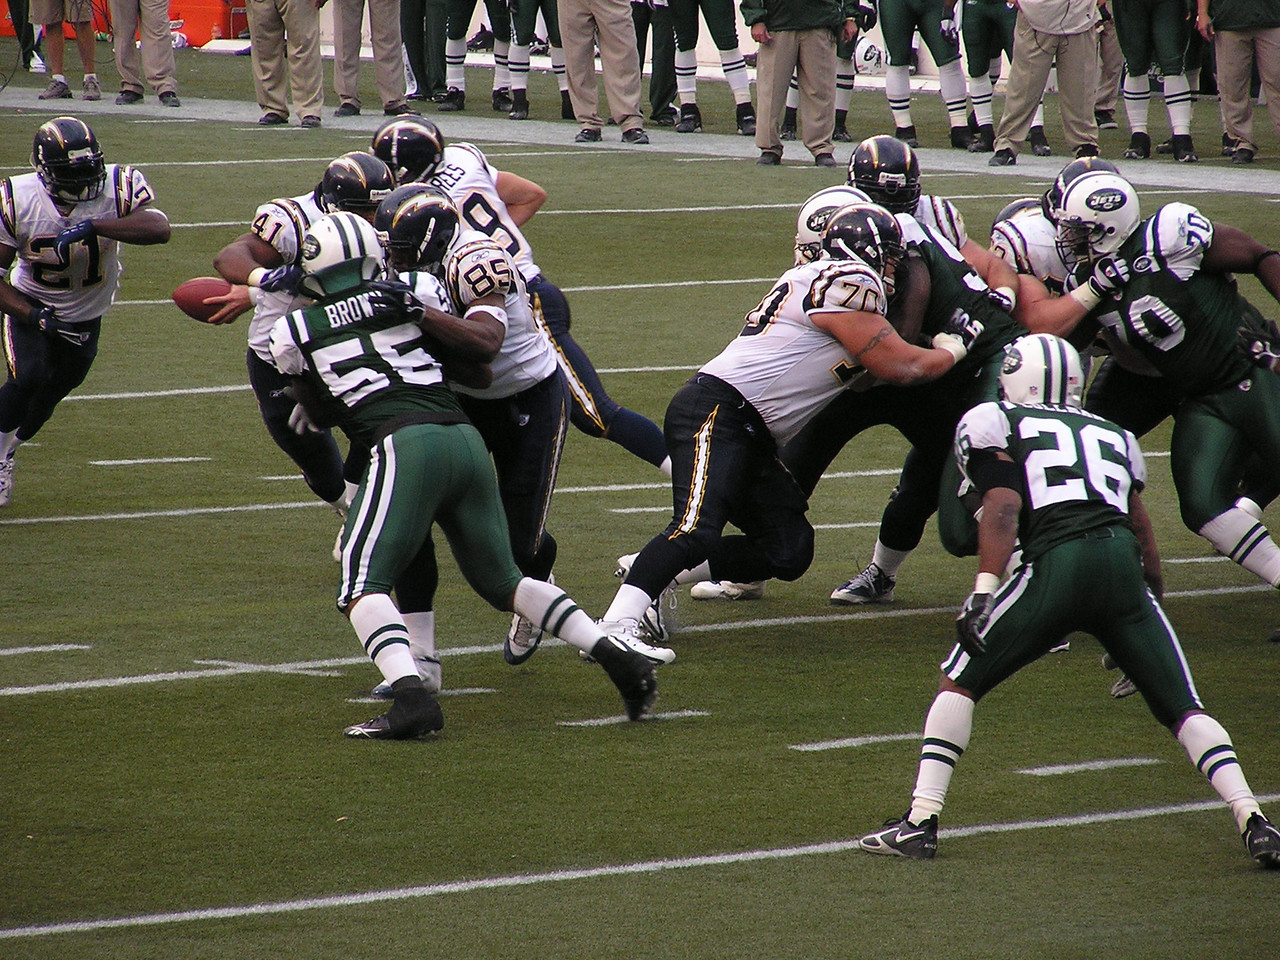 Drew Brees handing off to Tomlinson (while with the Chargers)